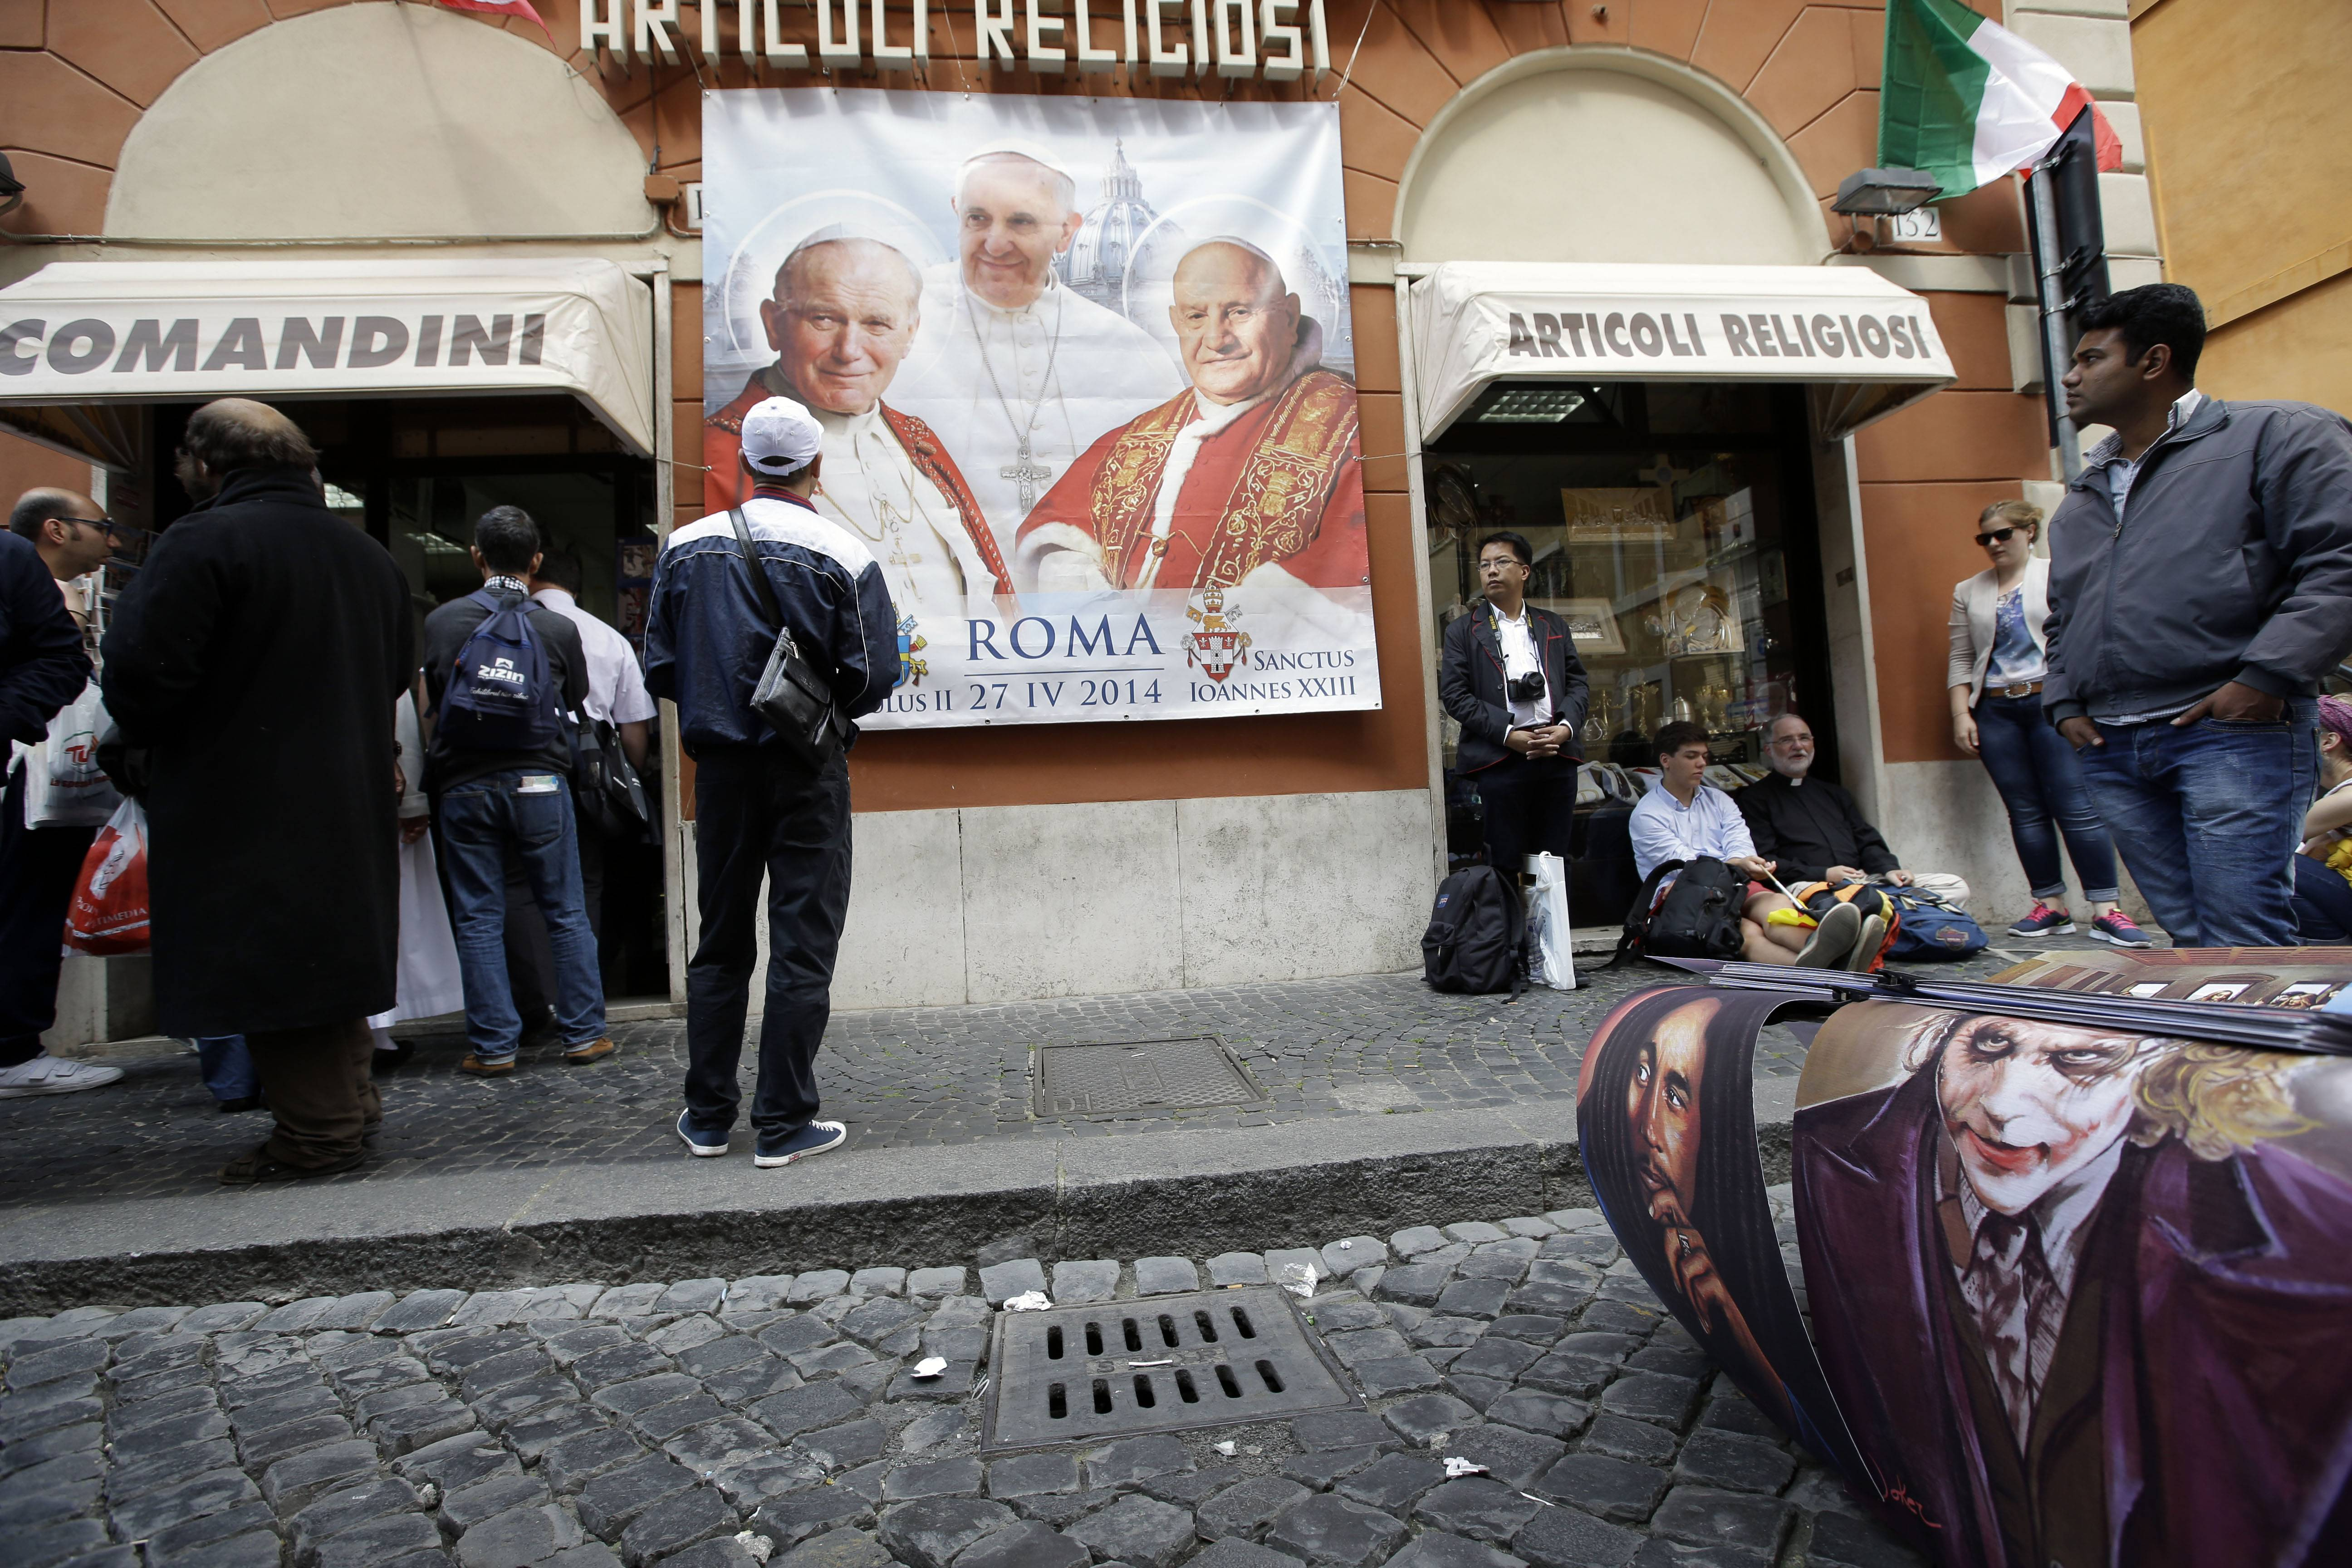 A street vendor stands near a shop selling religious items at Borgo Pio street near the Vatican, Saturday, April 26, 2014. Hundred thousands of pilgrims and faithful are expected to reach Rome to attend the scheduled April 27 ceremony at the Vatican in which Pope Francis will elevate in a solemn ceremony John XXIII and John Paul II to sainthood.